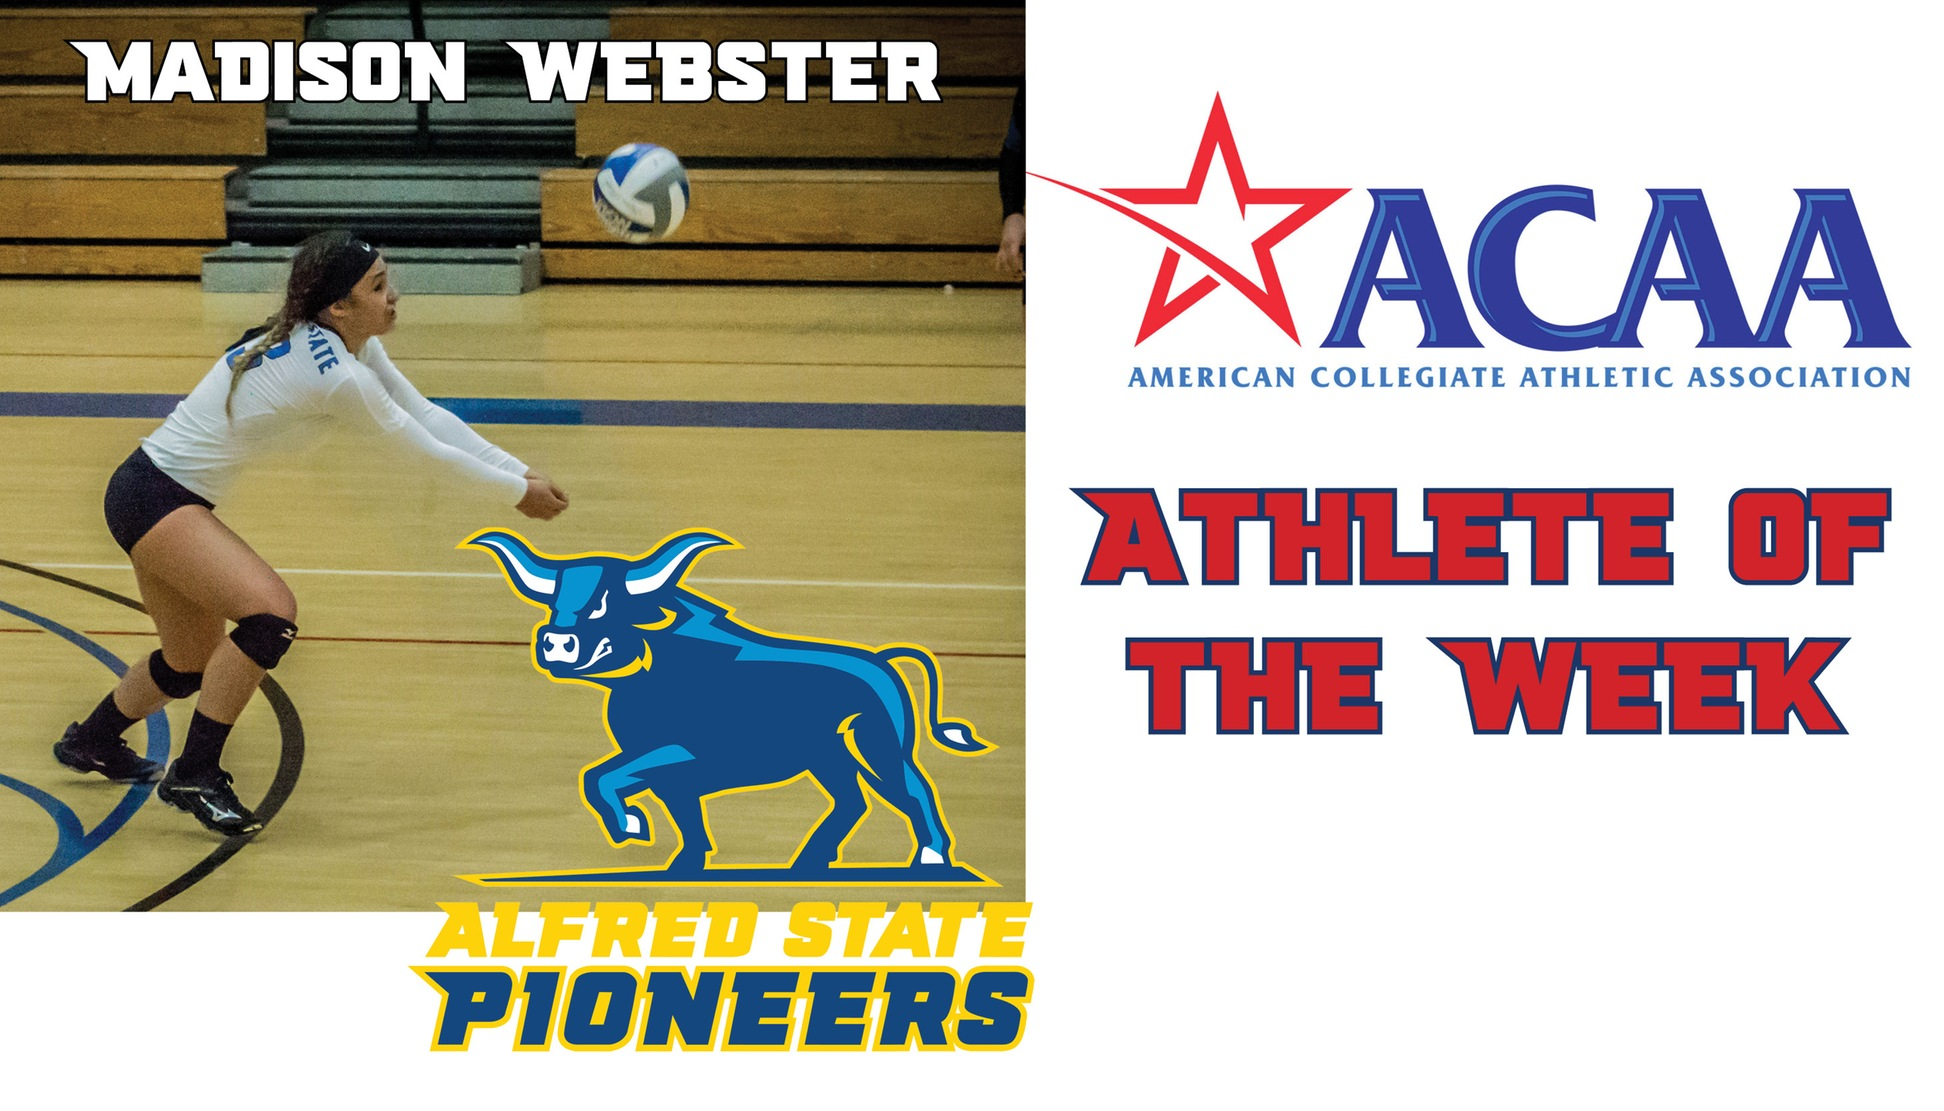 Madison Webster named ACAA Player of the Week